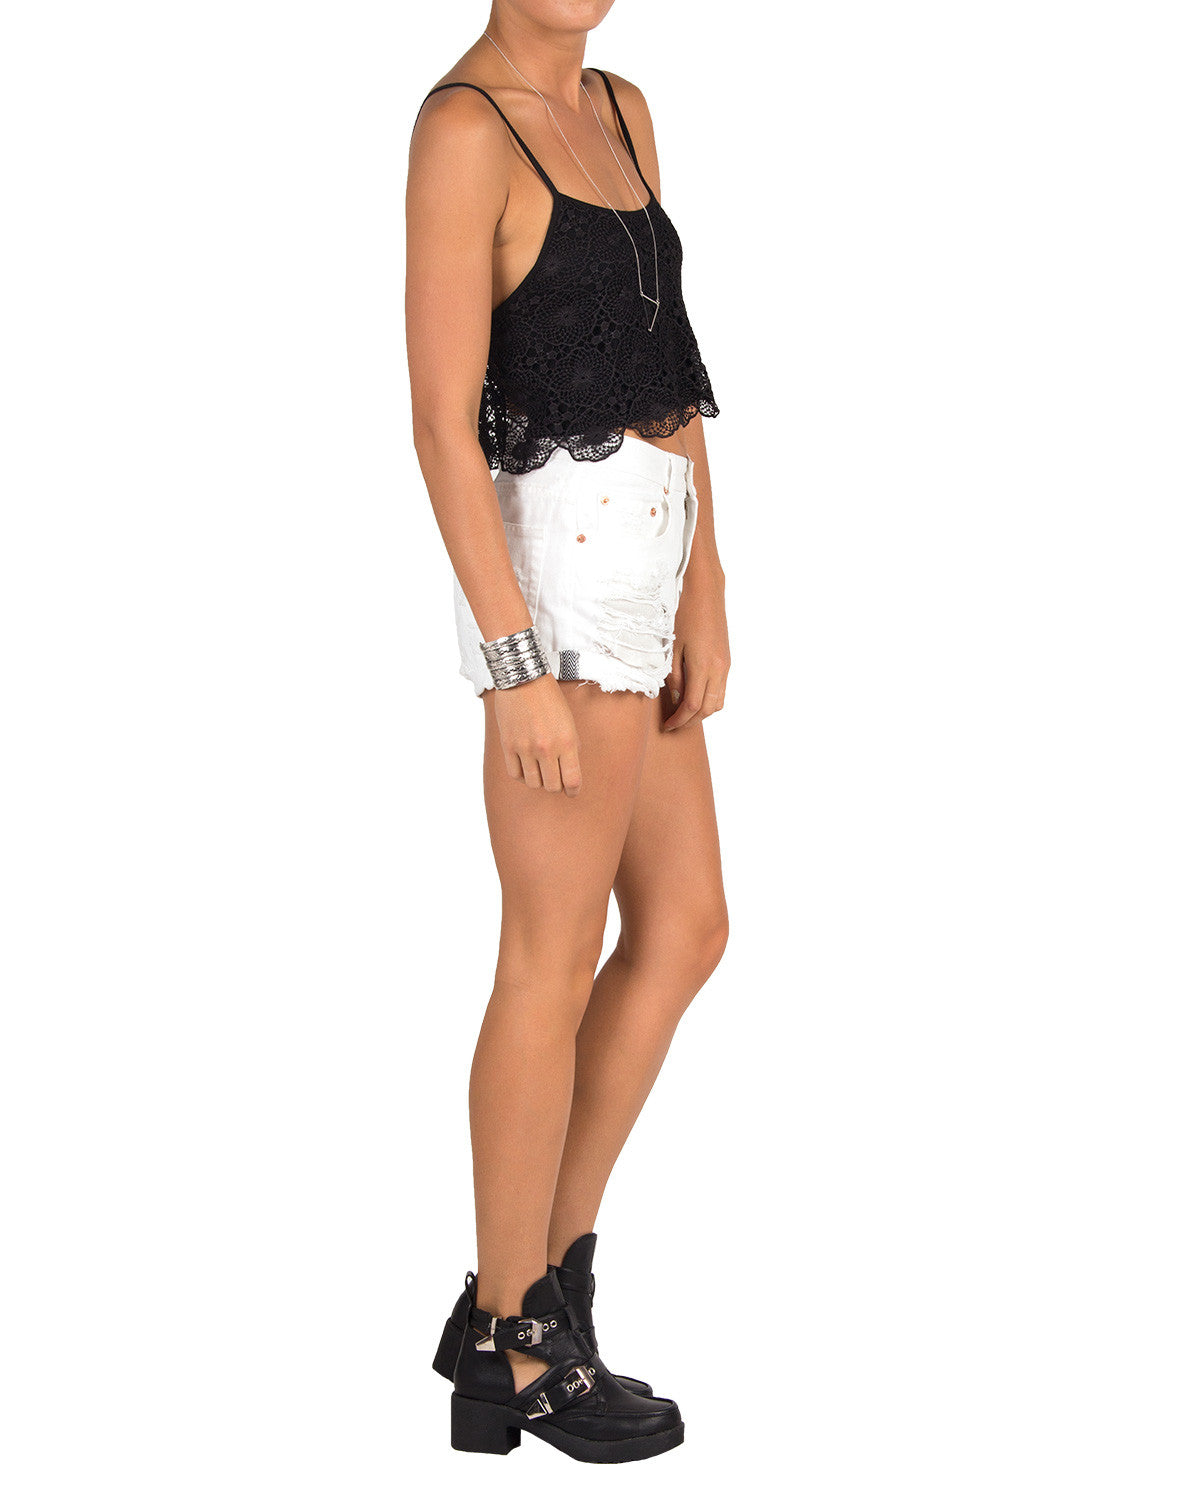 Crochet Crop Tank - Black - Large